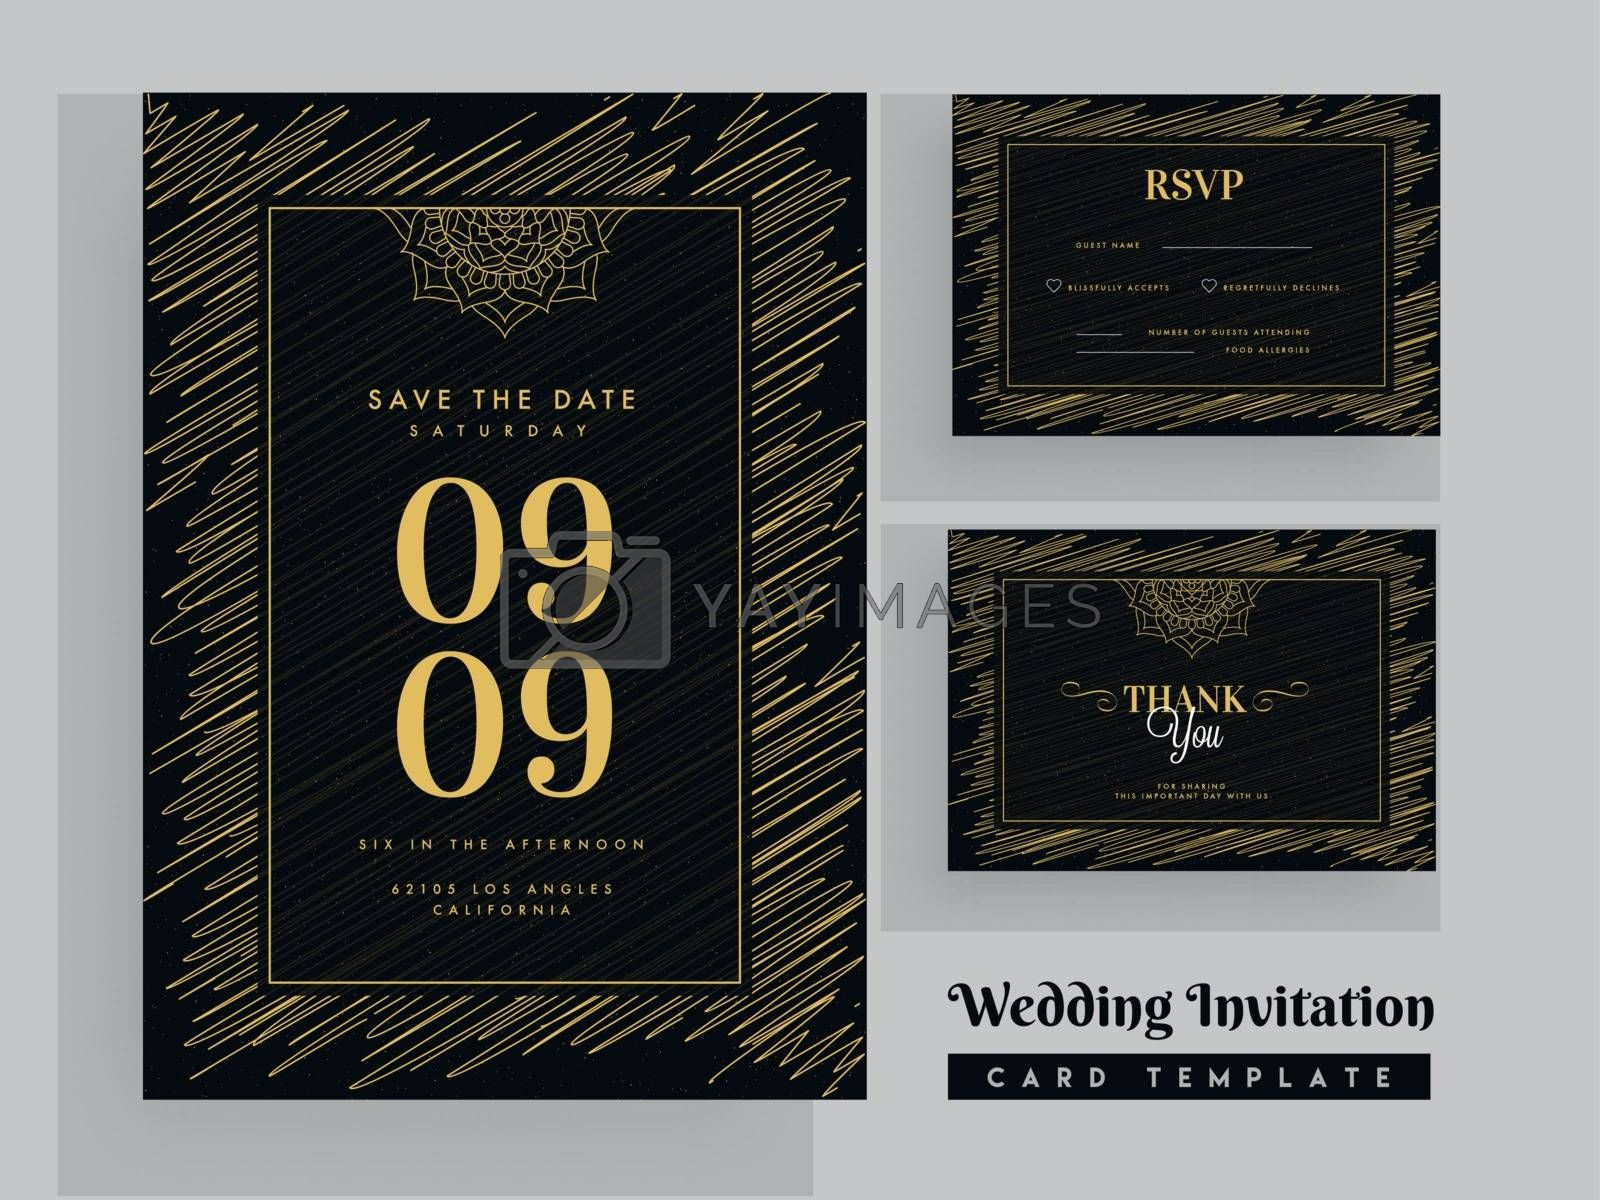 Royalty free image of Scribble pattern wedding invitation template design with marriag by aispl